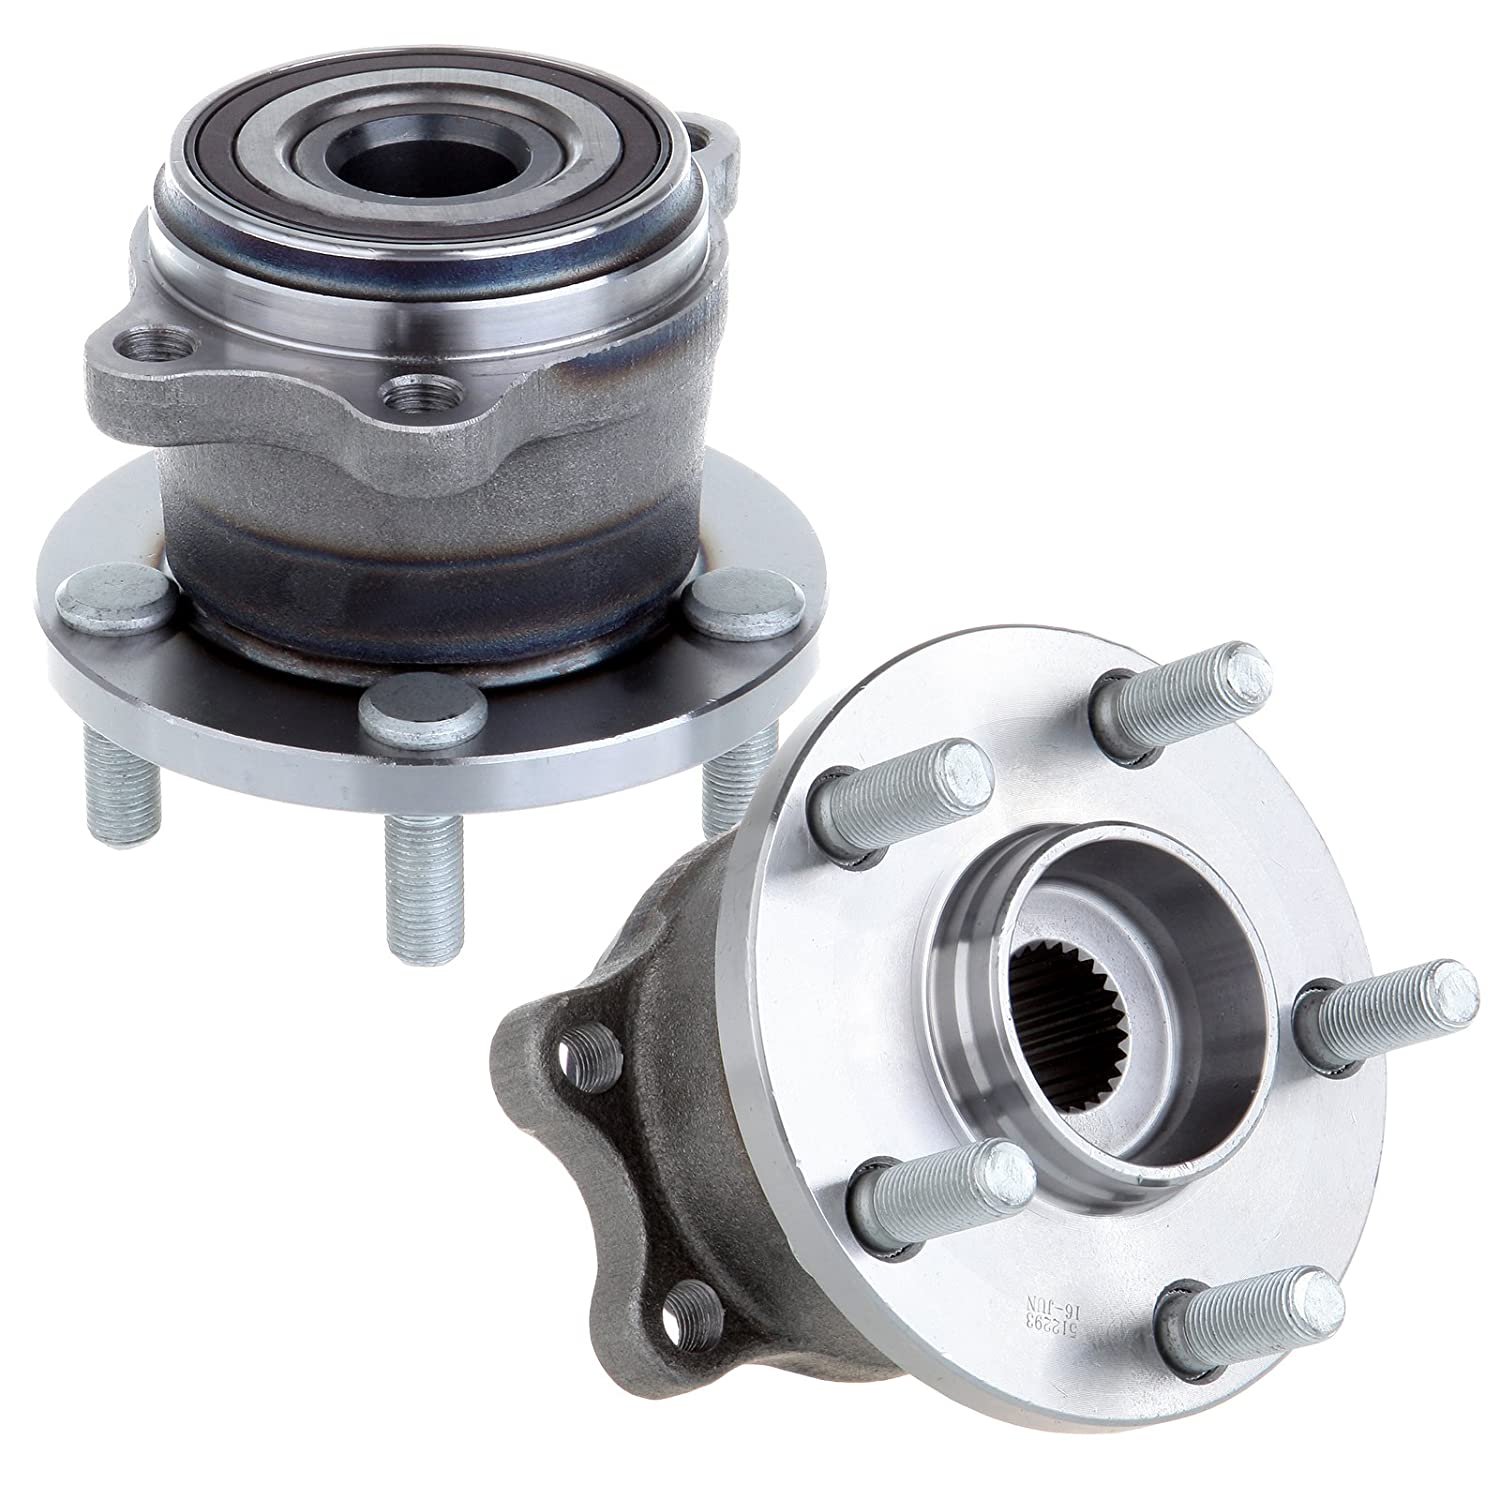 ECCPP Replacement fit for 2 Pcs New Rear Wheel Hub Bearing Assembly 2005-2009 Legacy Outback 5 Lugs W//ABS 512293 X 2